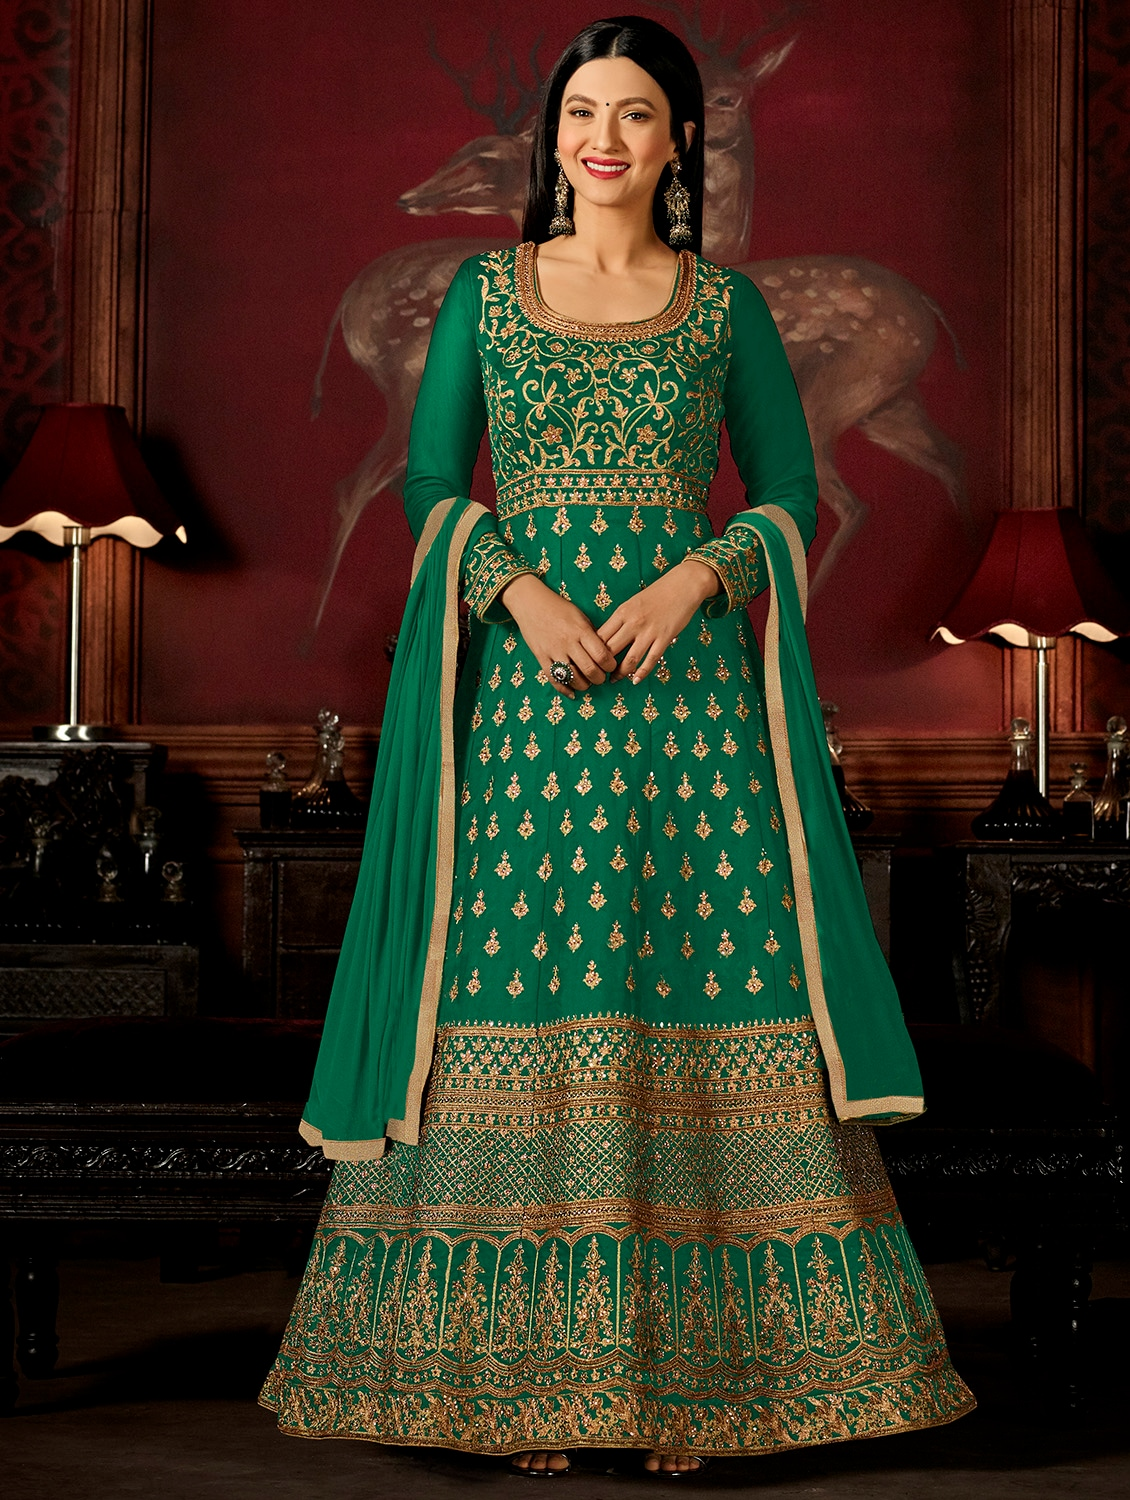 c0a278a6a87 ... Embroidered semi-stitched anarkali suit - 15383891 - Zoom Image - 1